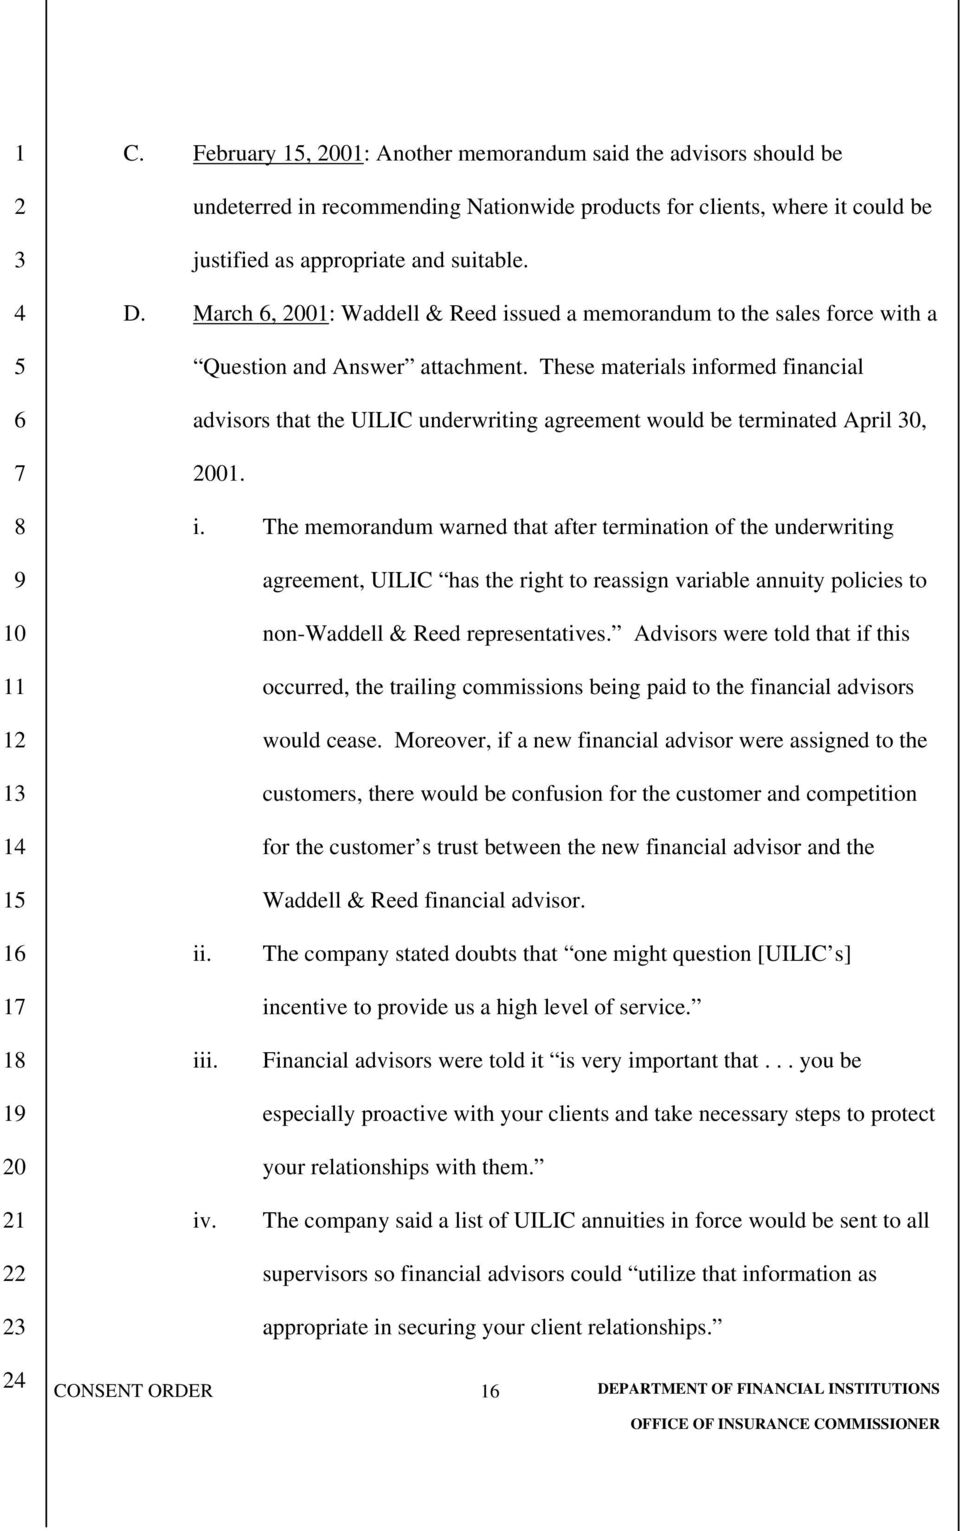 These materials informed financial advisors that the UILIC underwriting agreement would be terminated April 0, 01. i. The memorandum warned that after termination of the underwriting agreement, UILIC has the right to reassign variable annuity policies to non-waddell & Reed representatives.